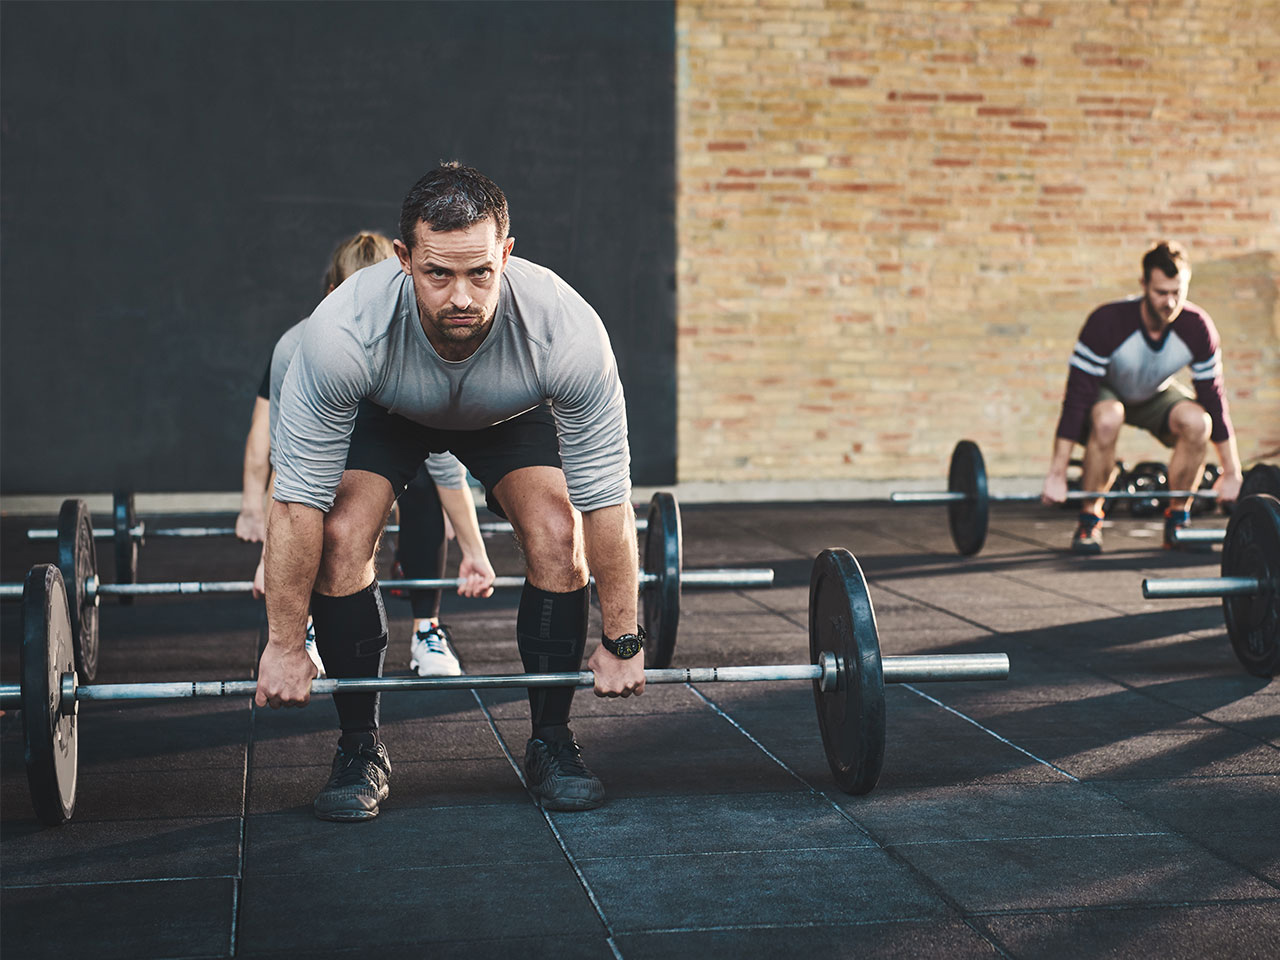 15 crossfit exercises for those who have a serious approach to training